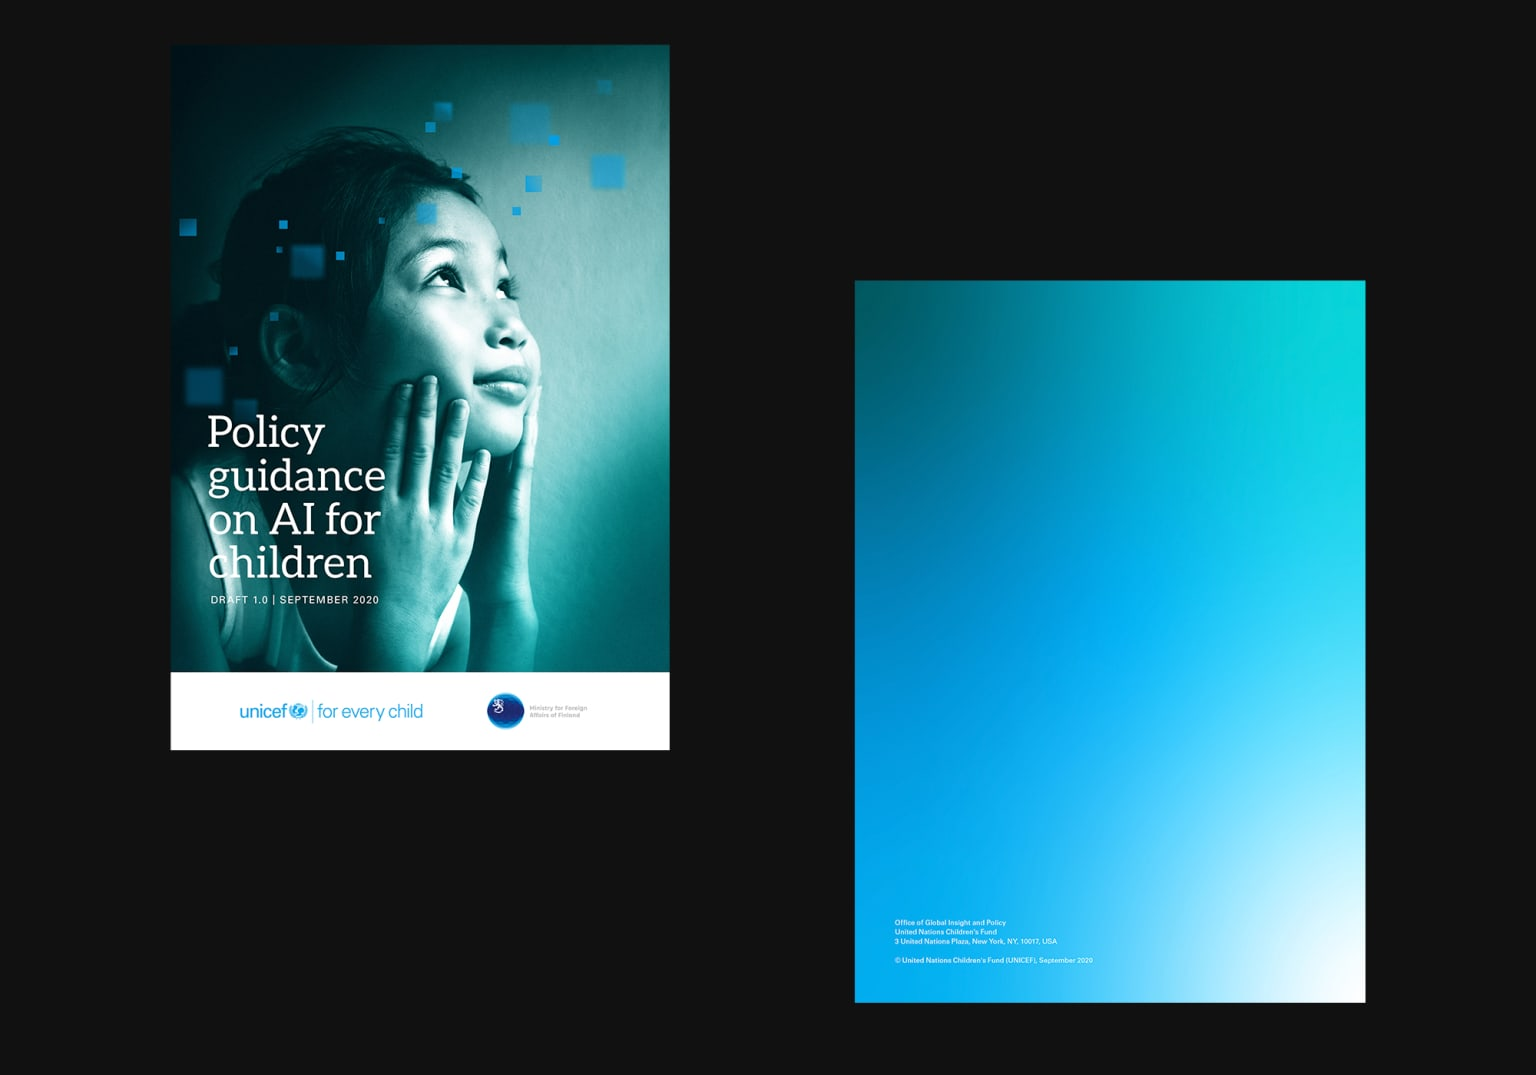 UNICEF - Policy Guidance on AI for Children